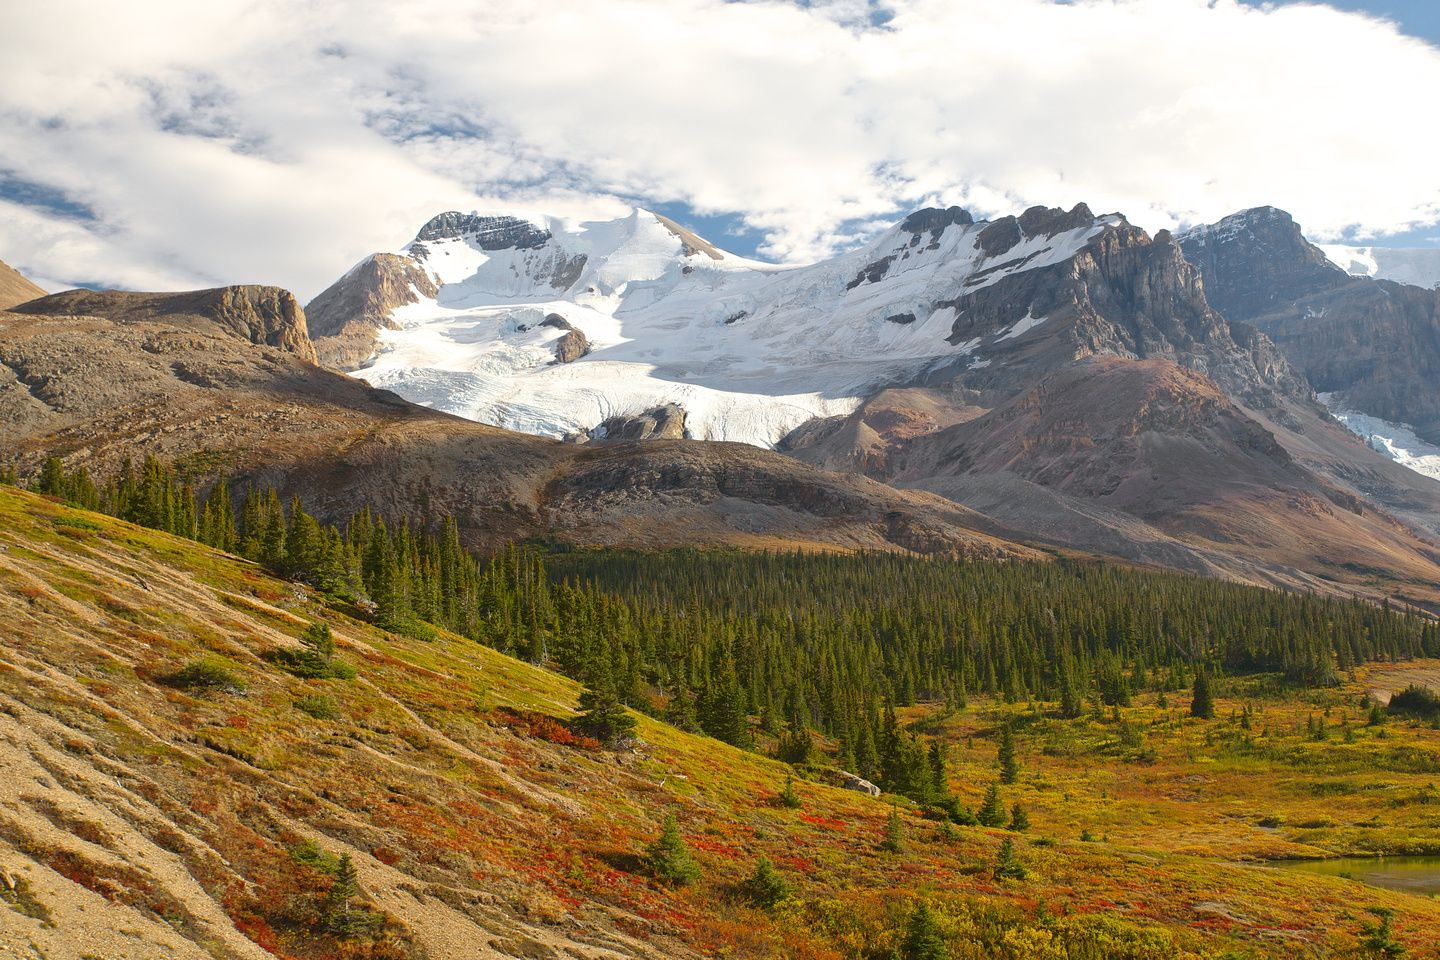 Amazing view of the canadian rockies during early fall